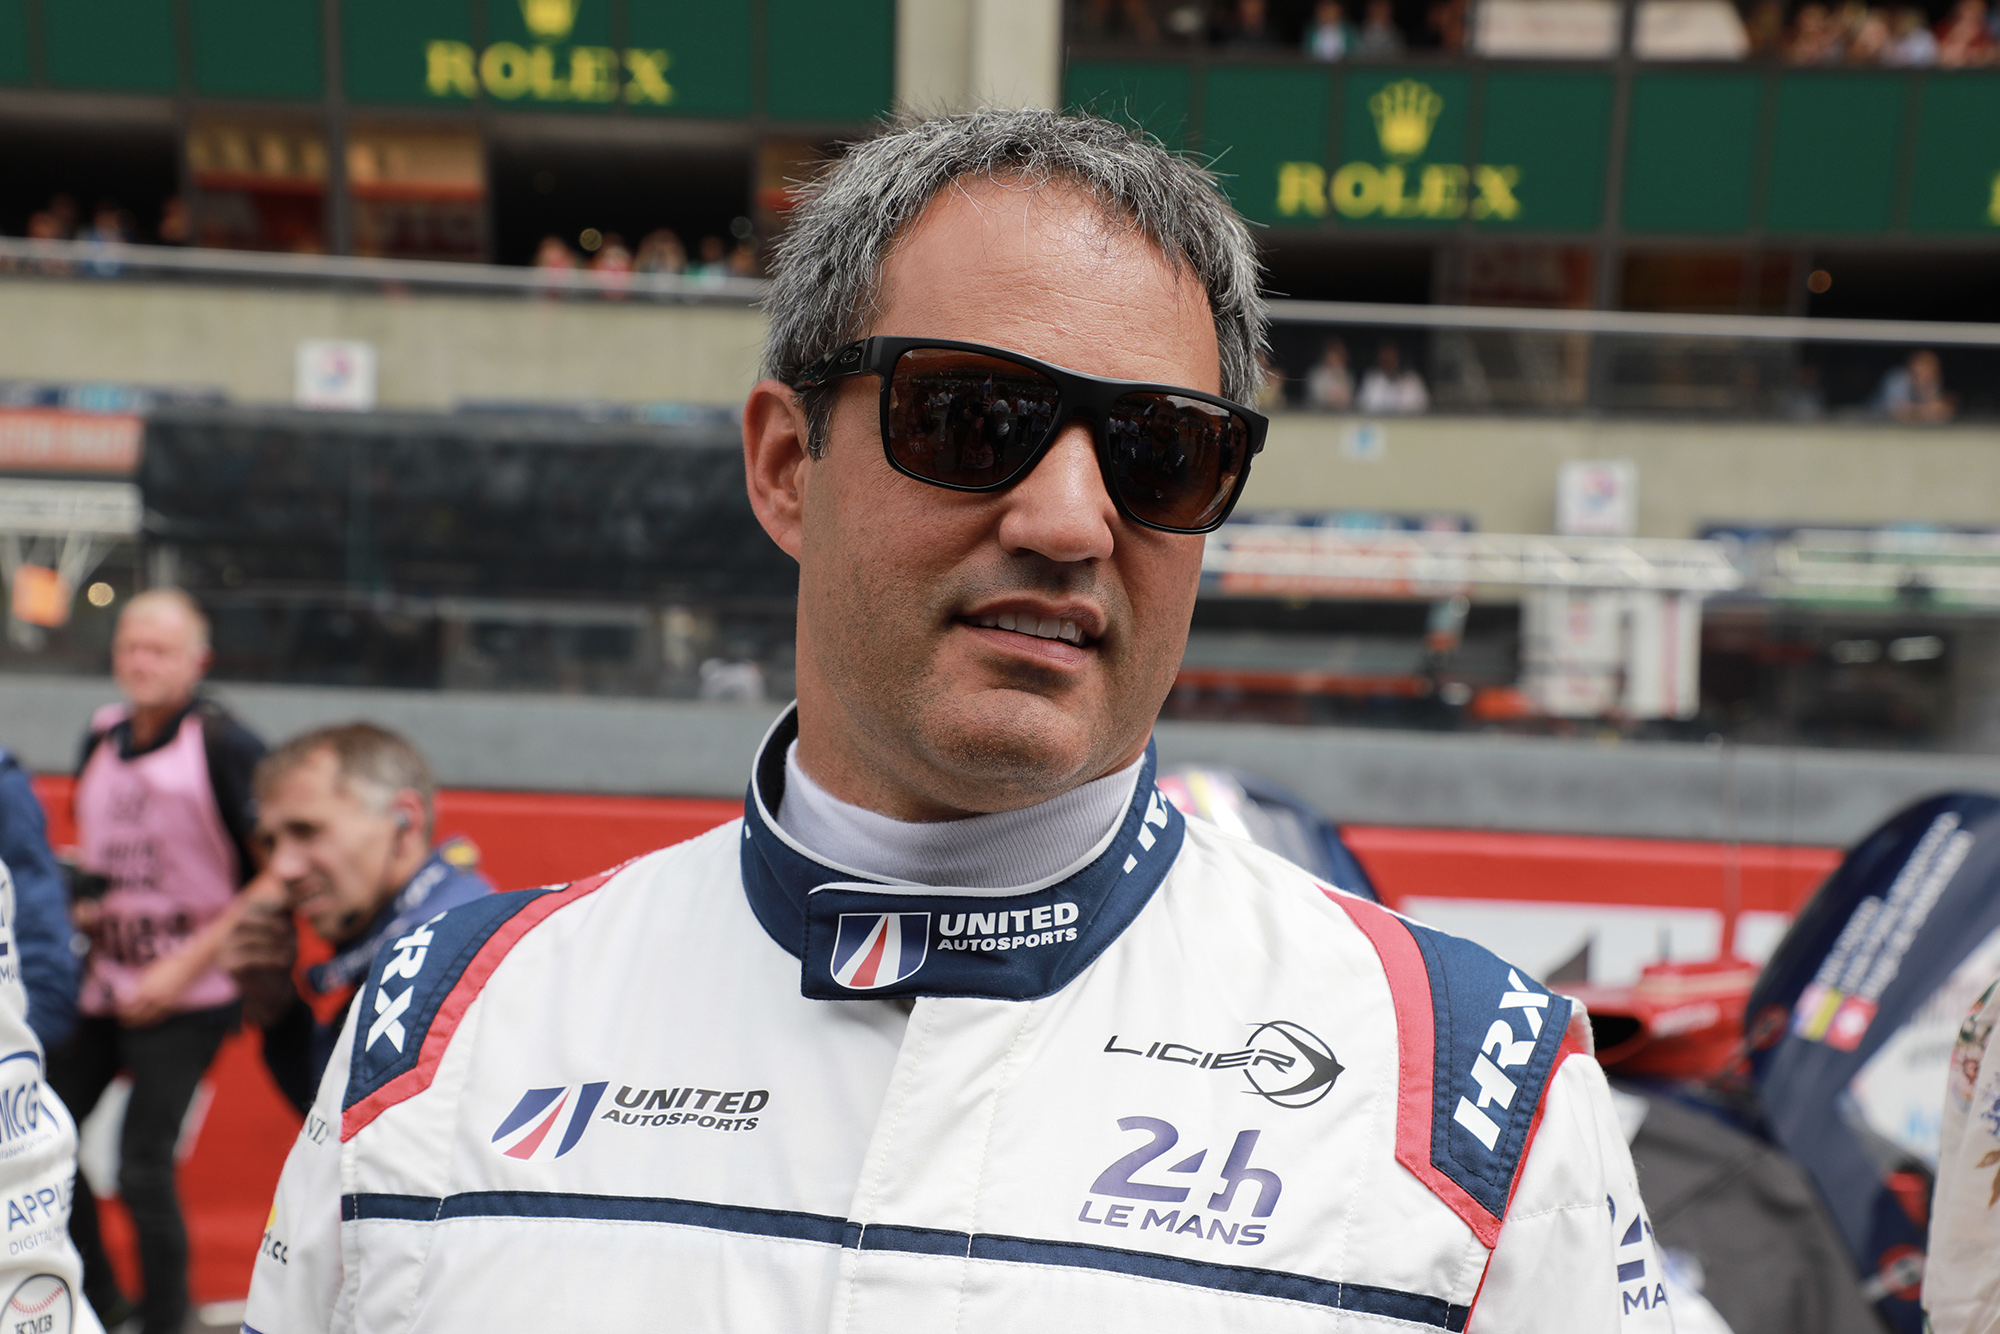 Juan Pablo Montoya at the 2018 Le Mans 24 Hours